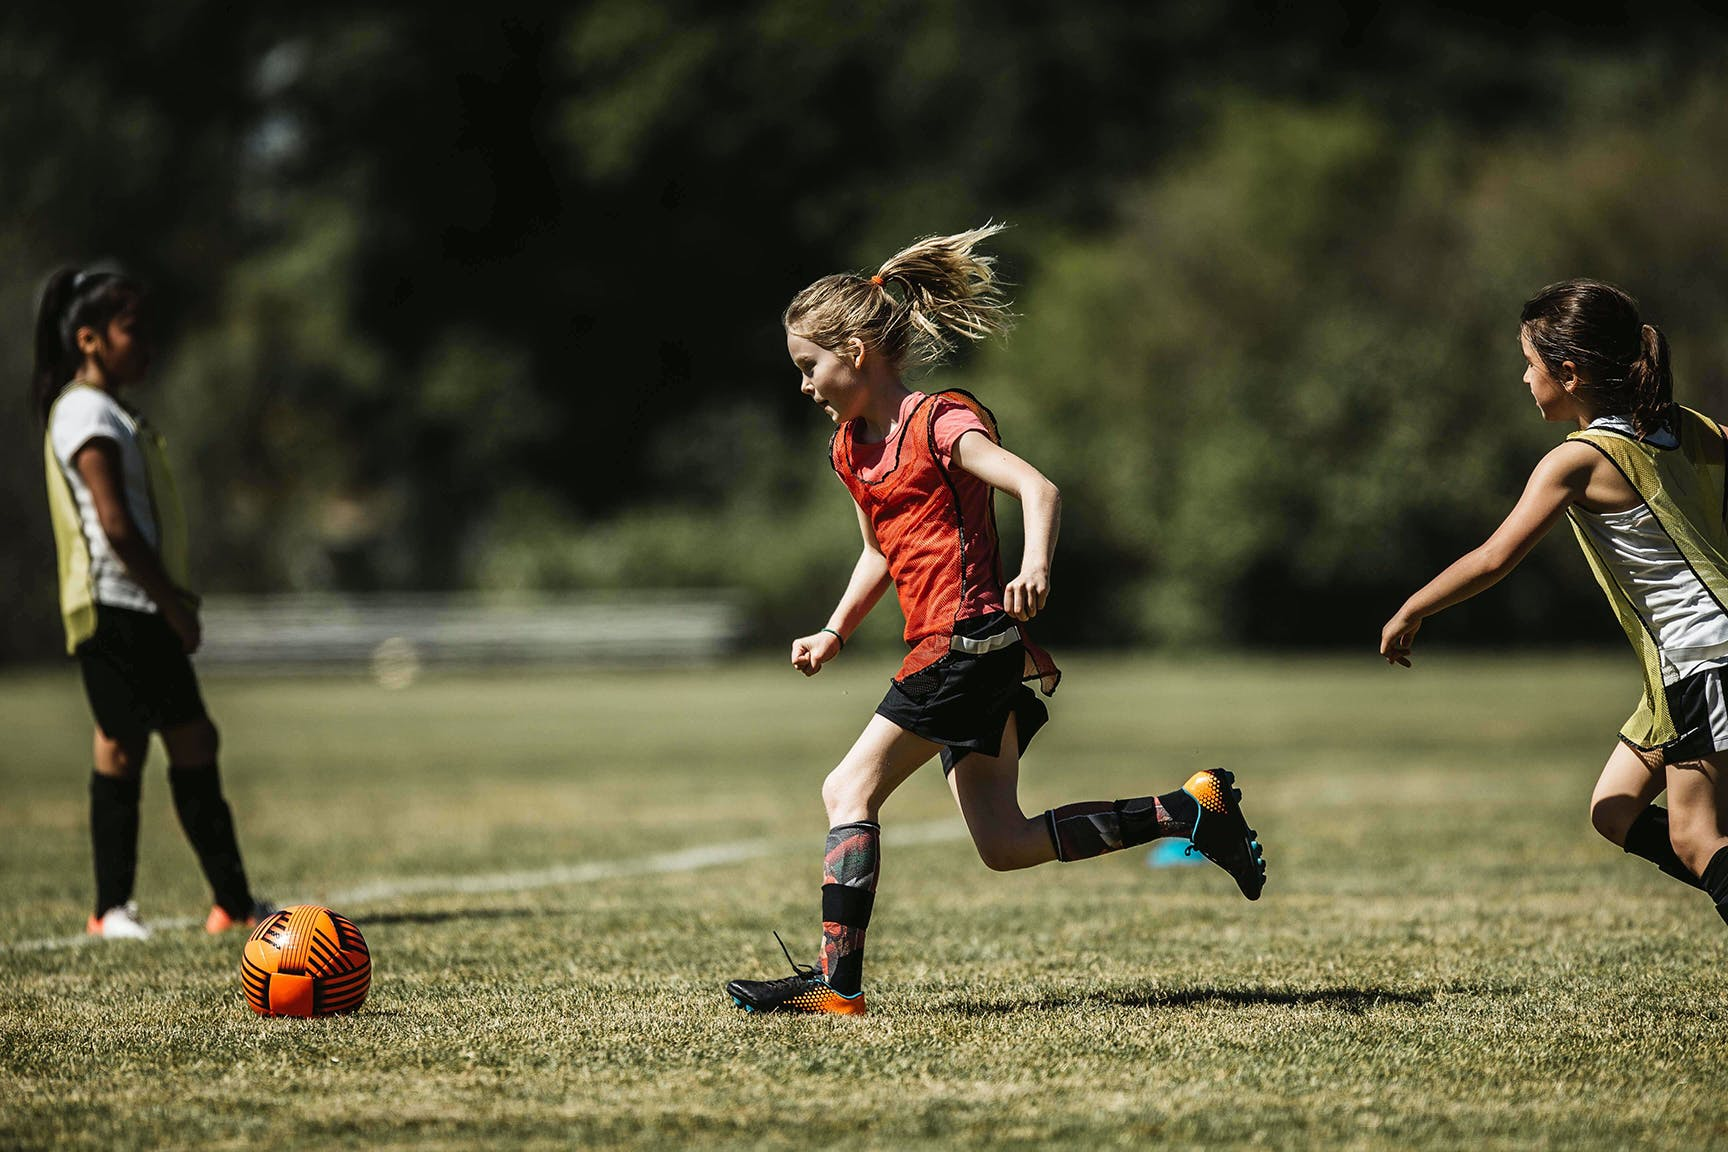 Girl in red jersey playing soccer